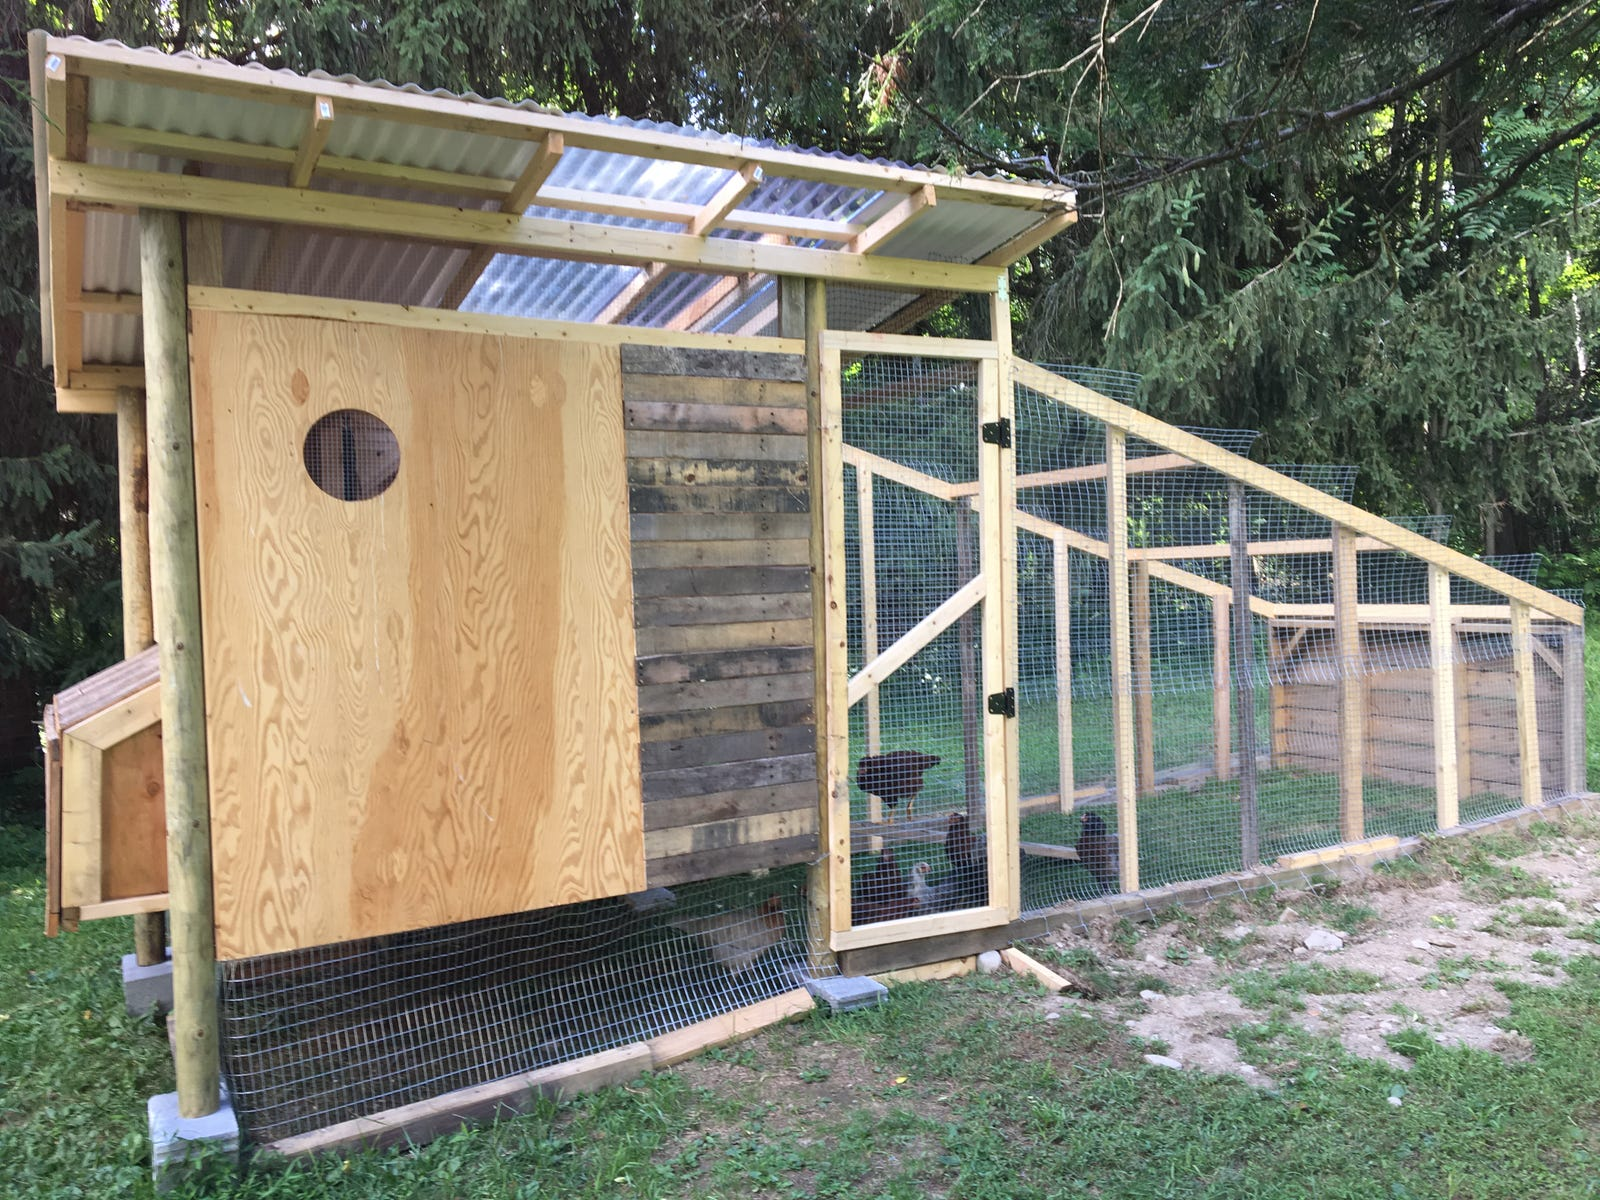 My nearly-completed coop, which I made mostly from scrap wood plus around $200 in lumber and other building materials.